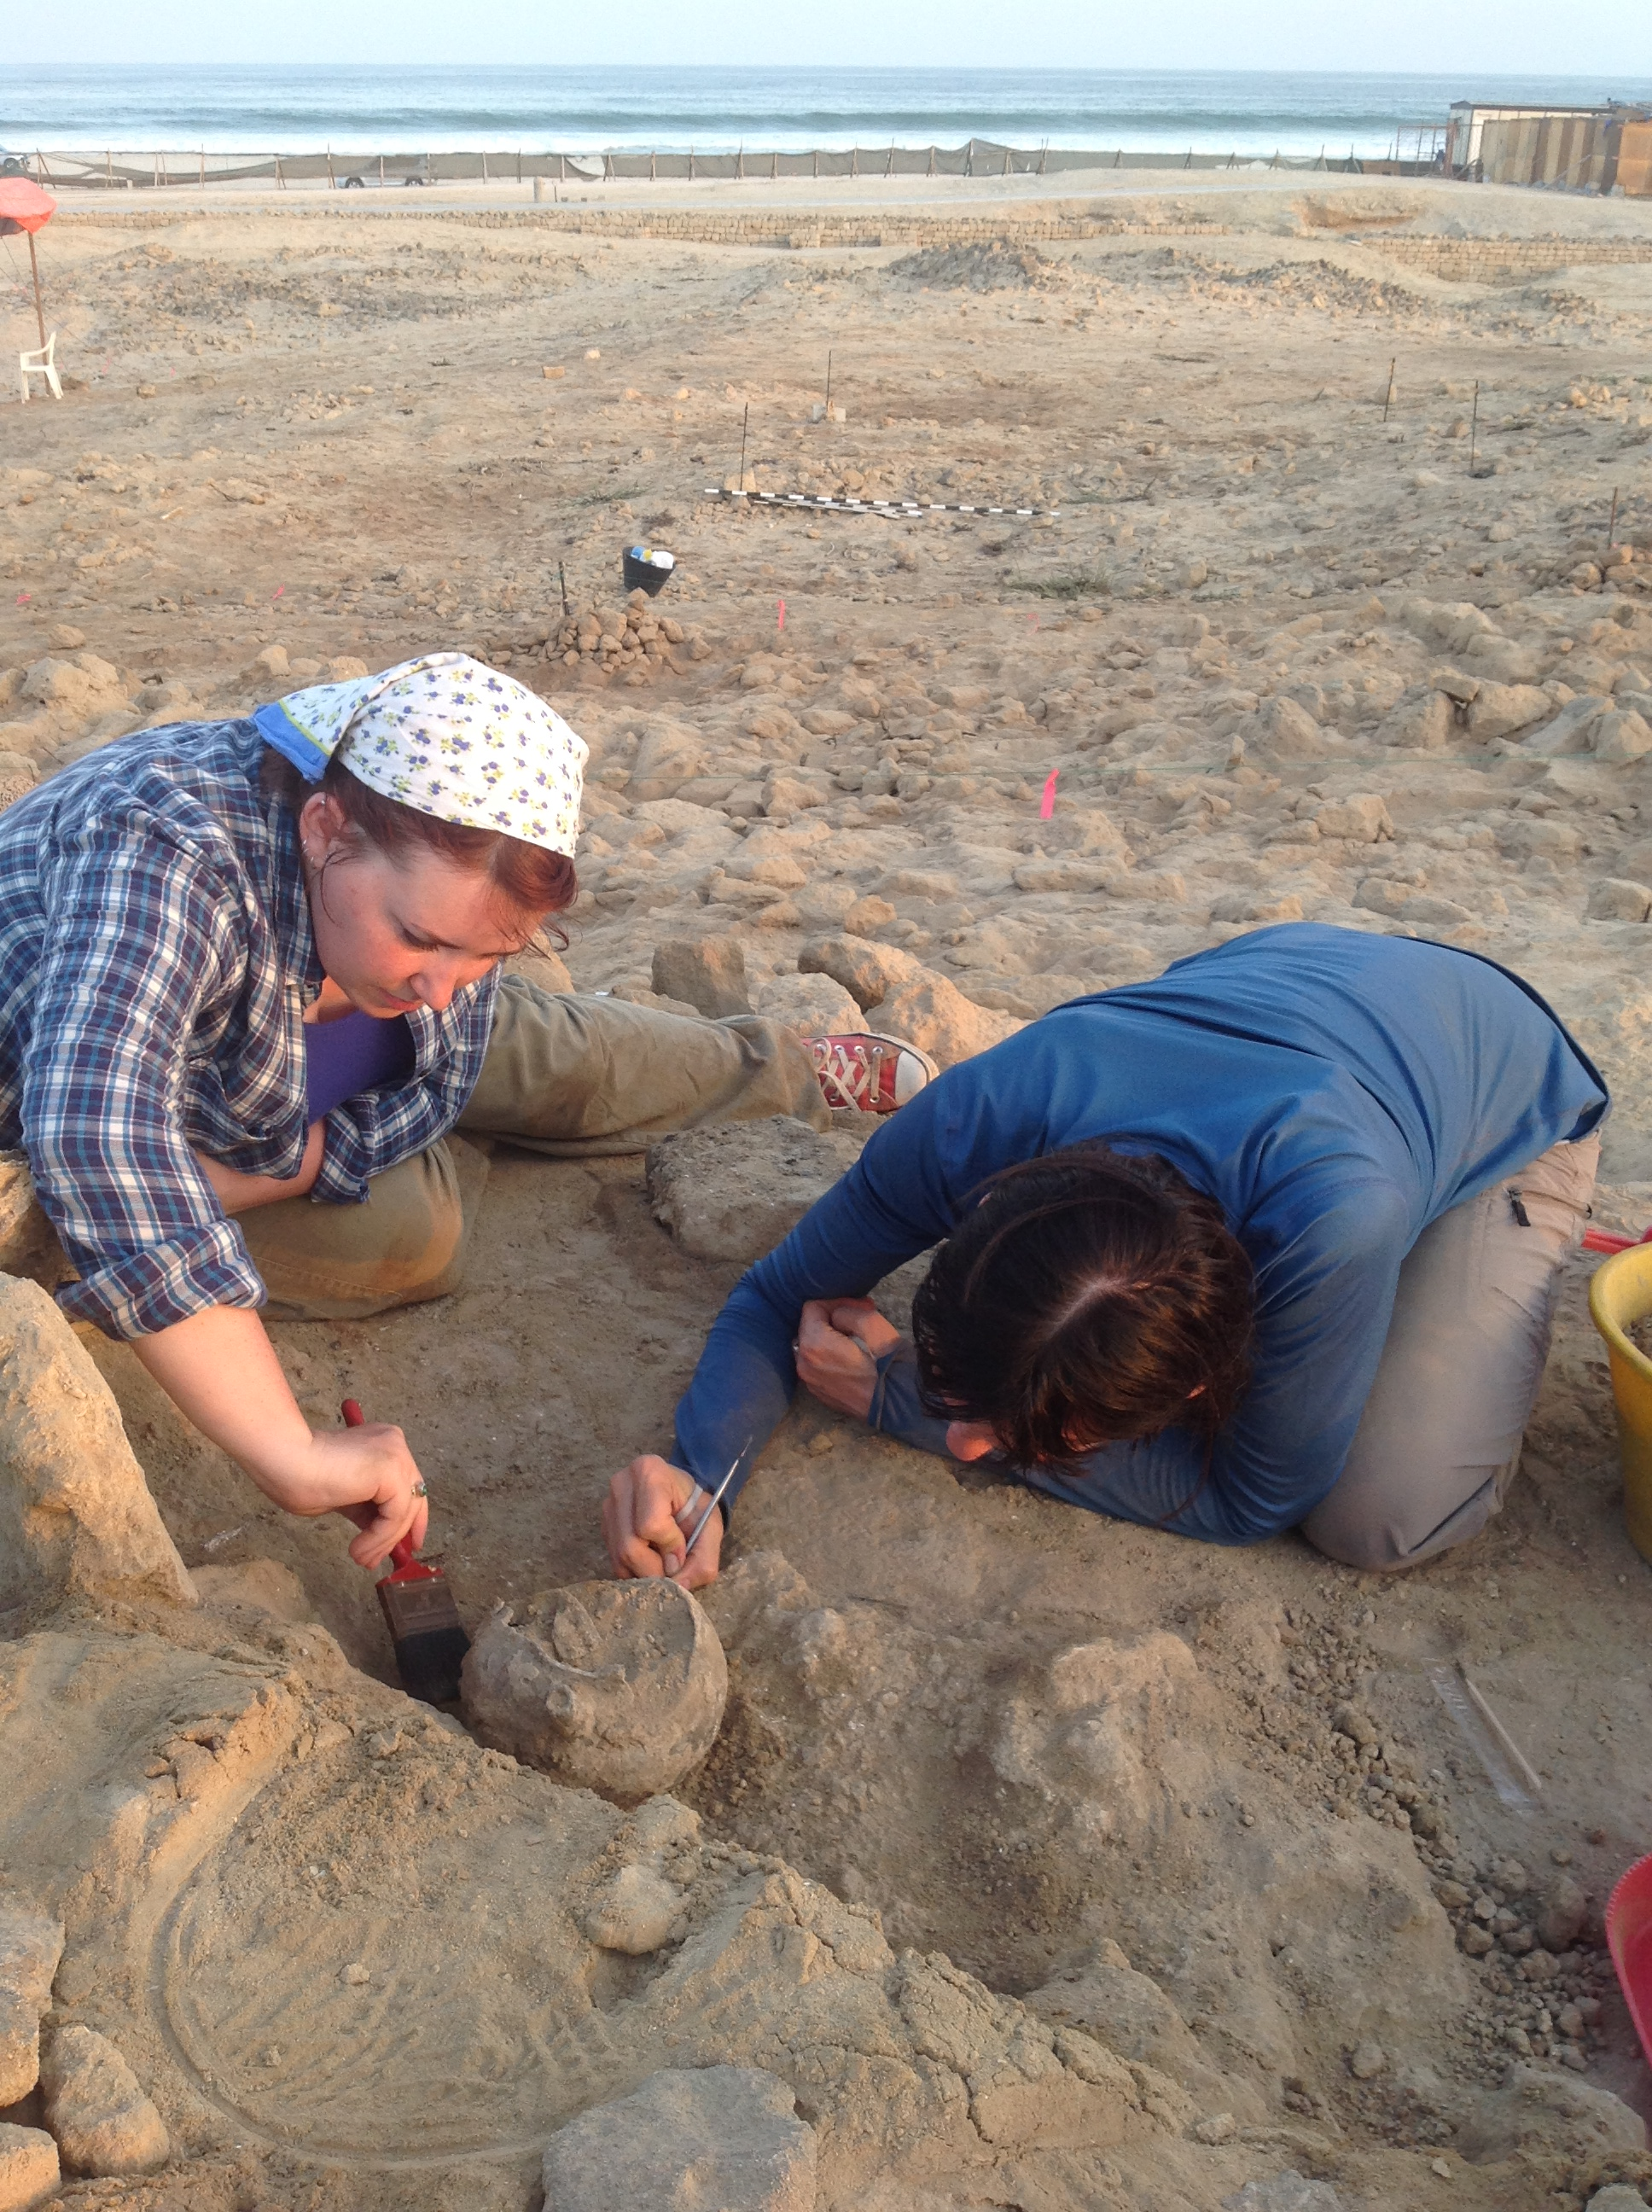 UALR student Deanna Holdcraft excavates in ancient ruins in Oman